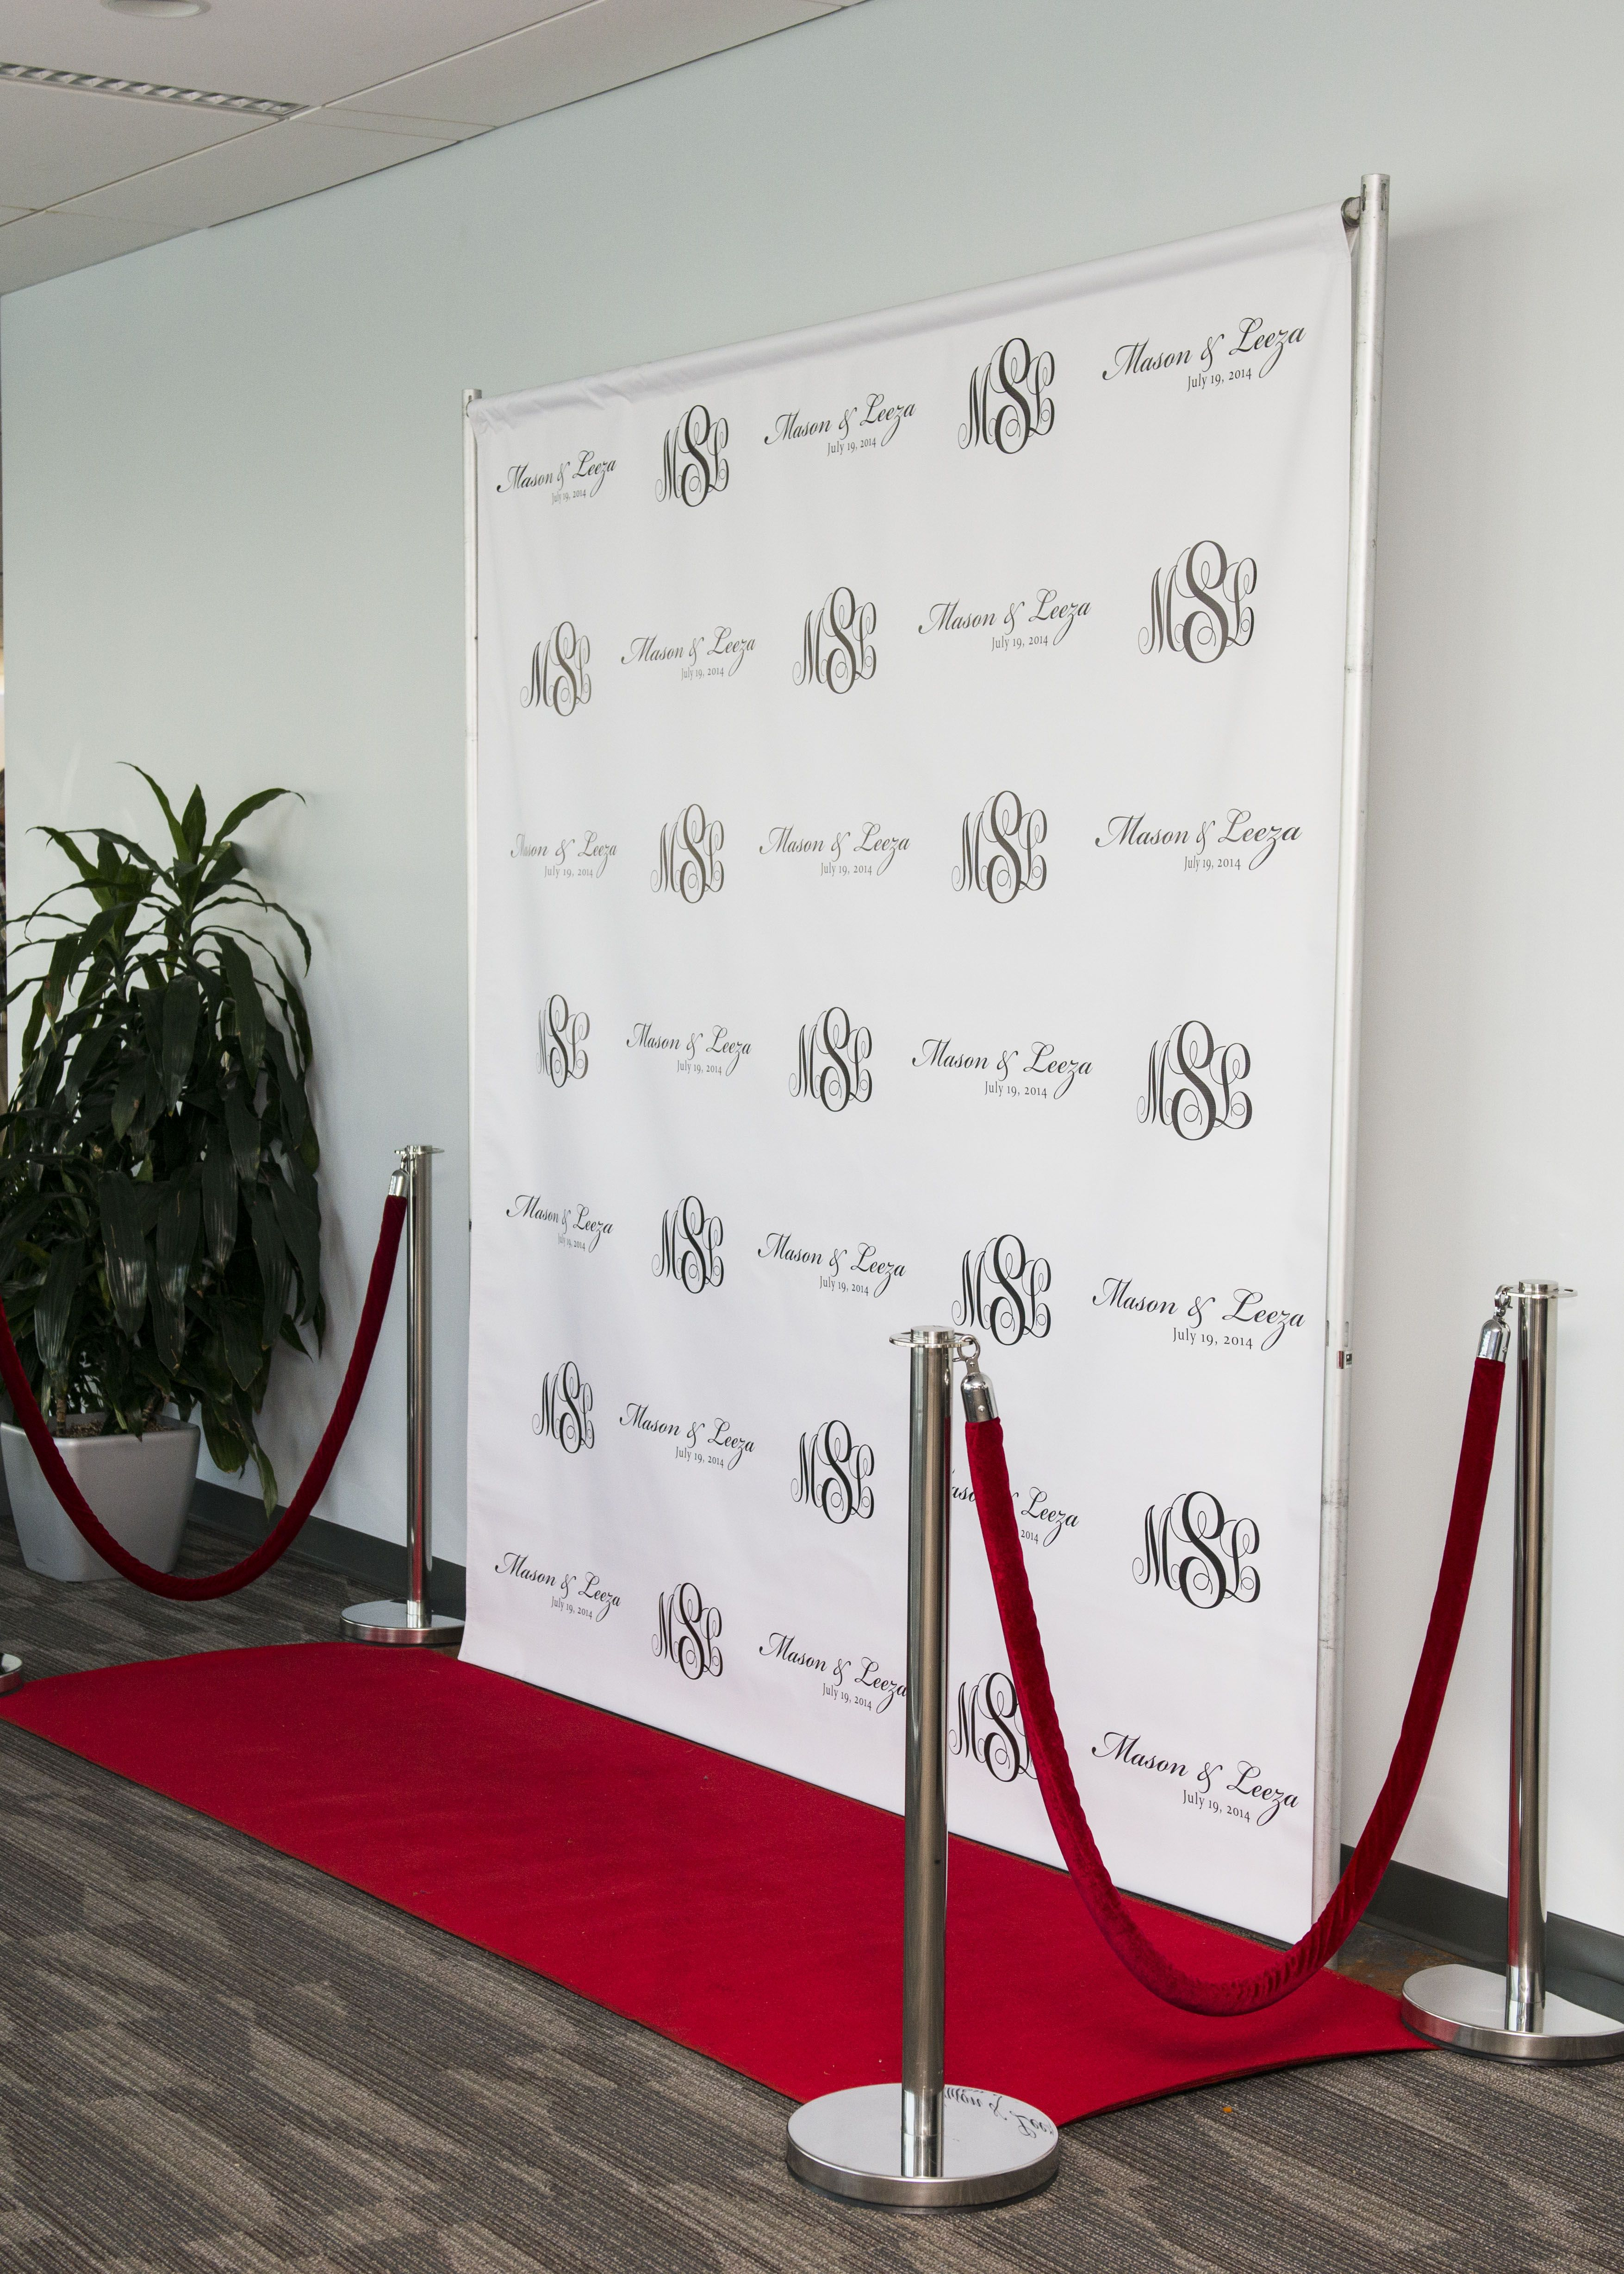 Step And Repeat Backdrop Custom Monograms Company Logos Sponsor Logos Etc Add Red Carp Hollywood Party Theme Grand Opening Party Pineapple Birthday Party